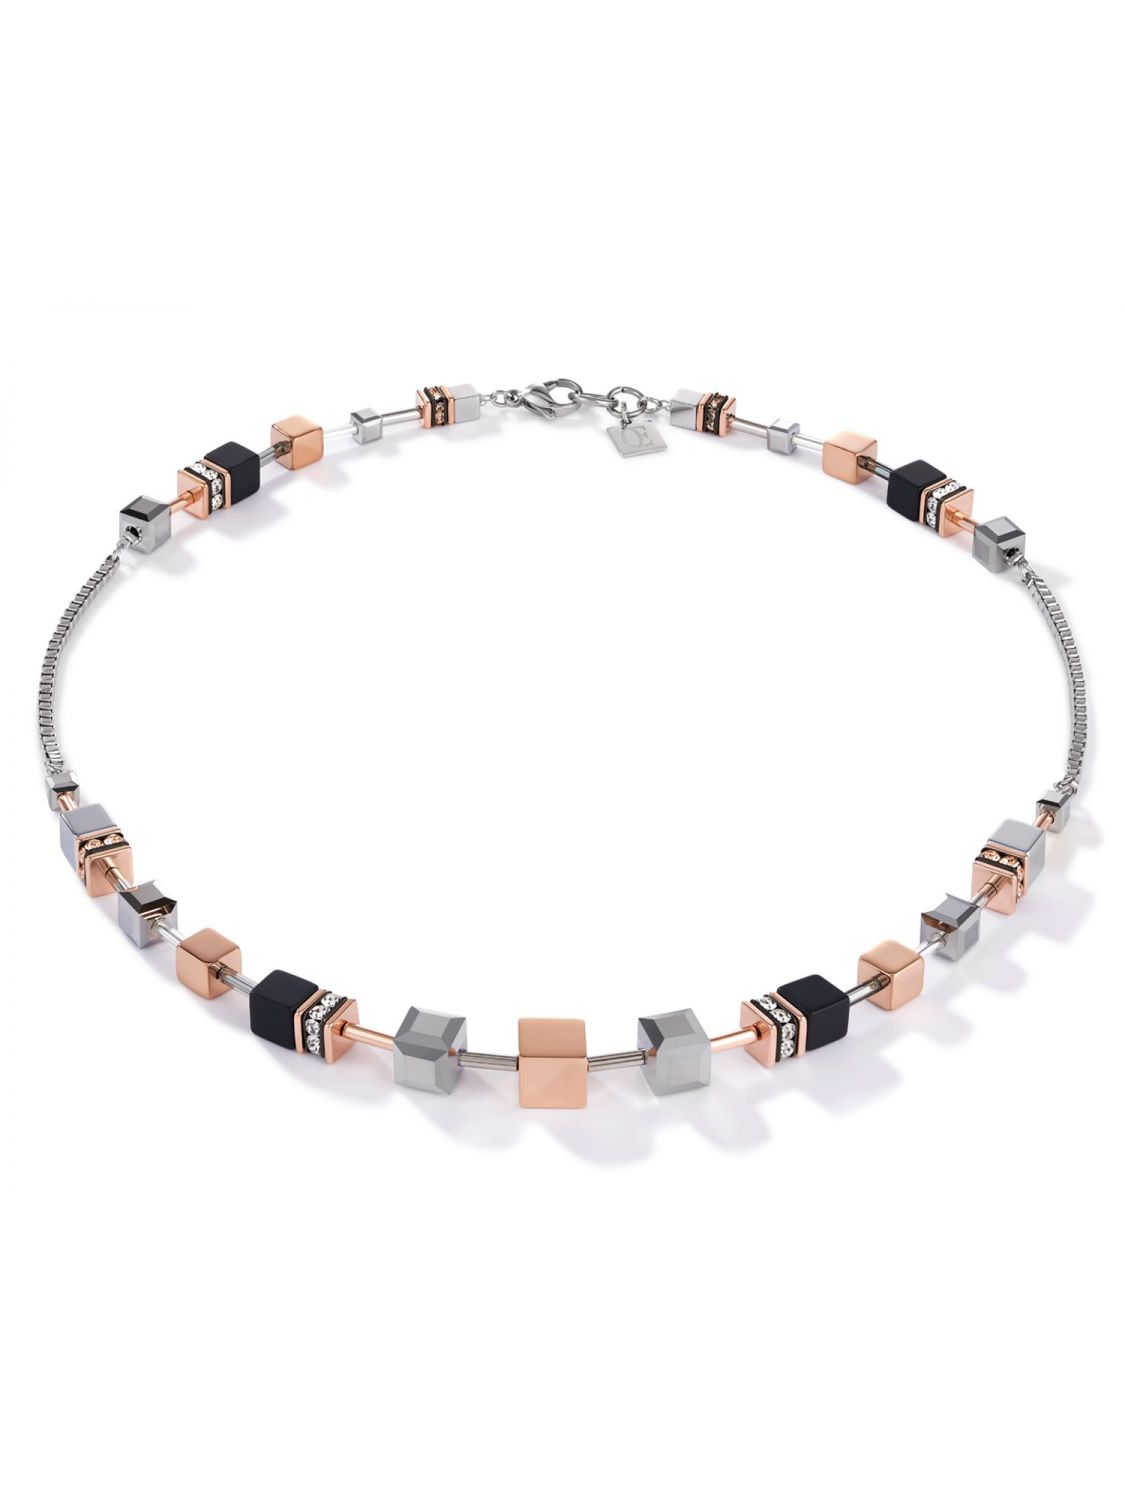 Coeur de Lion 25/25 25 Ladies Necklace Stainless Steel rose gold tone /  silver